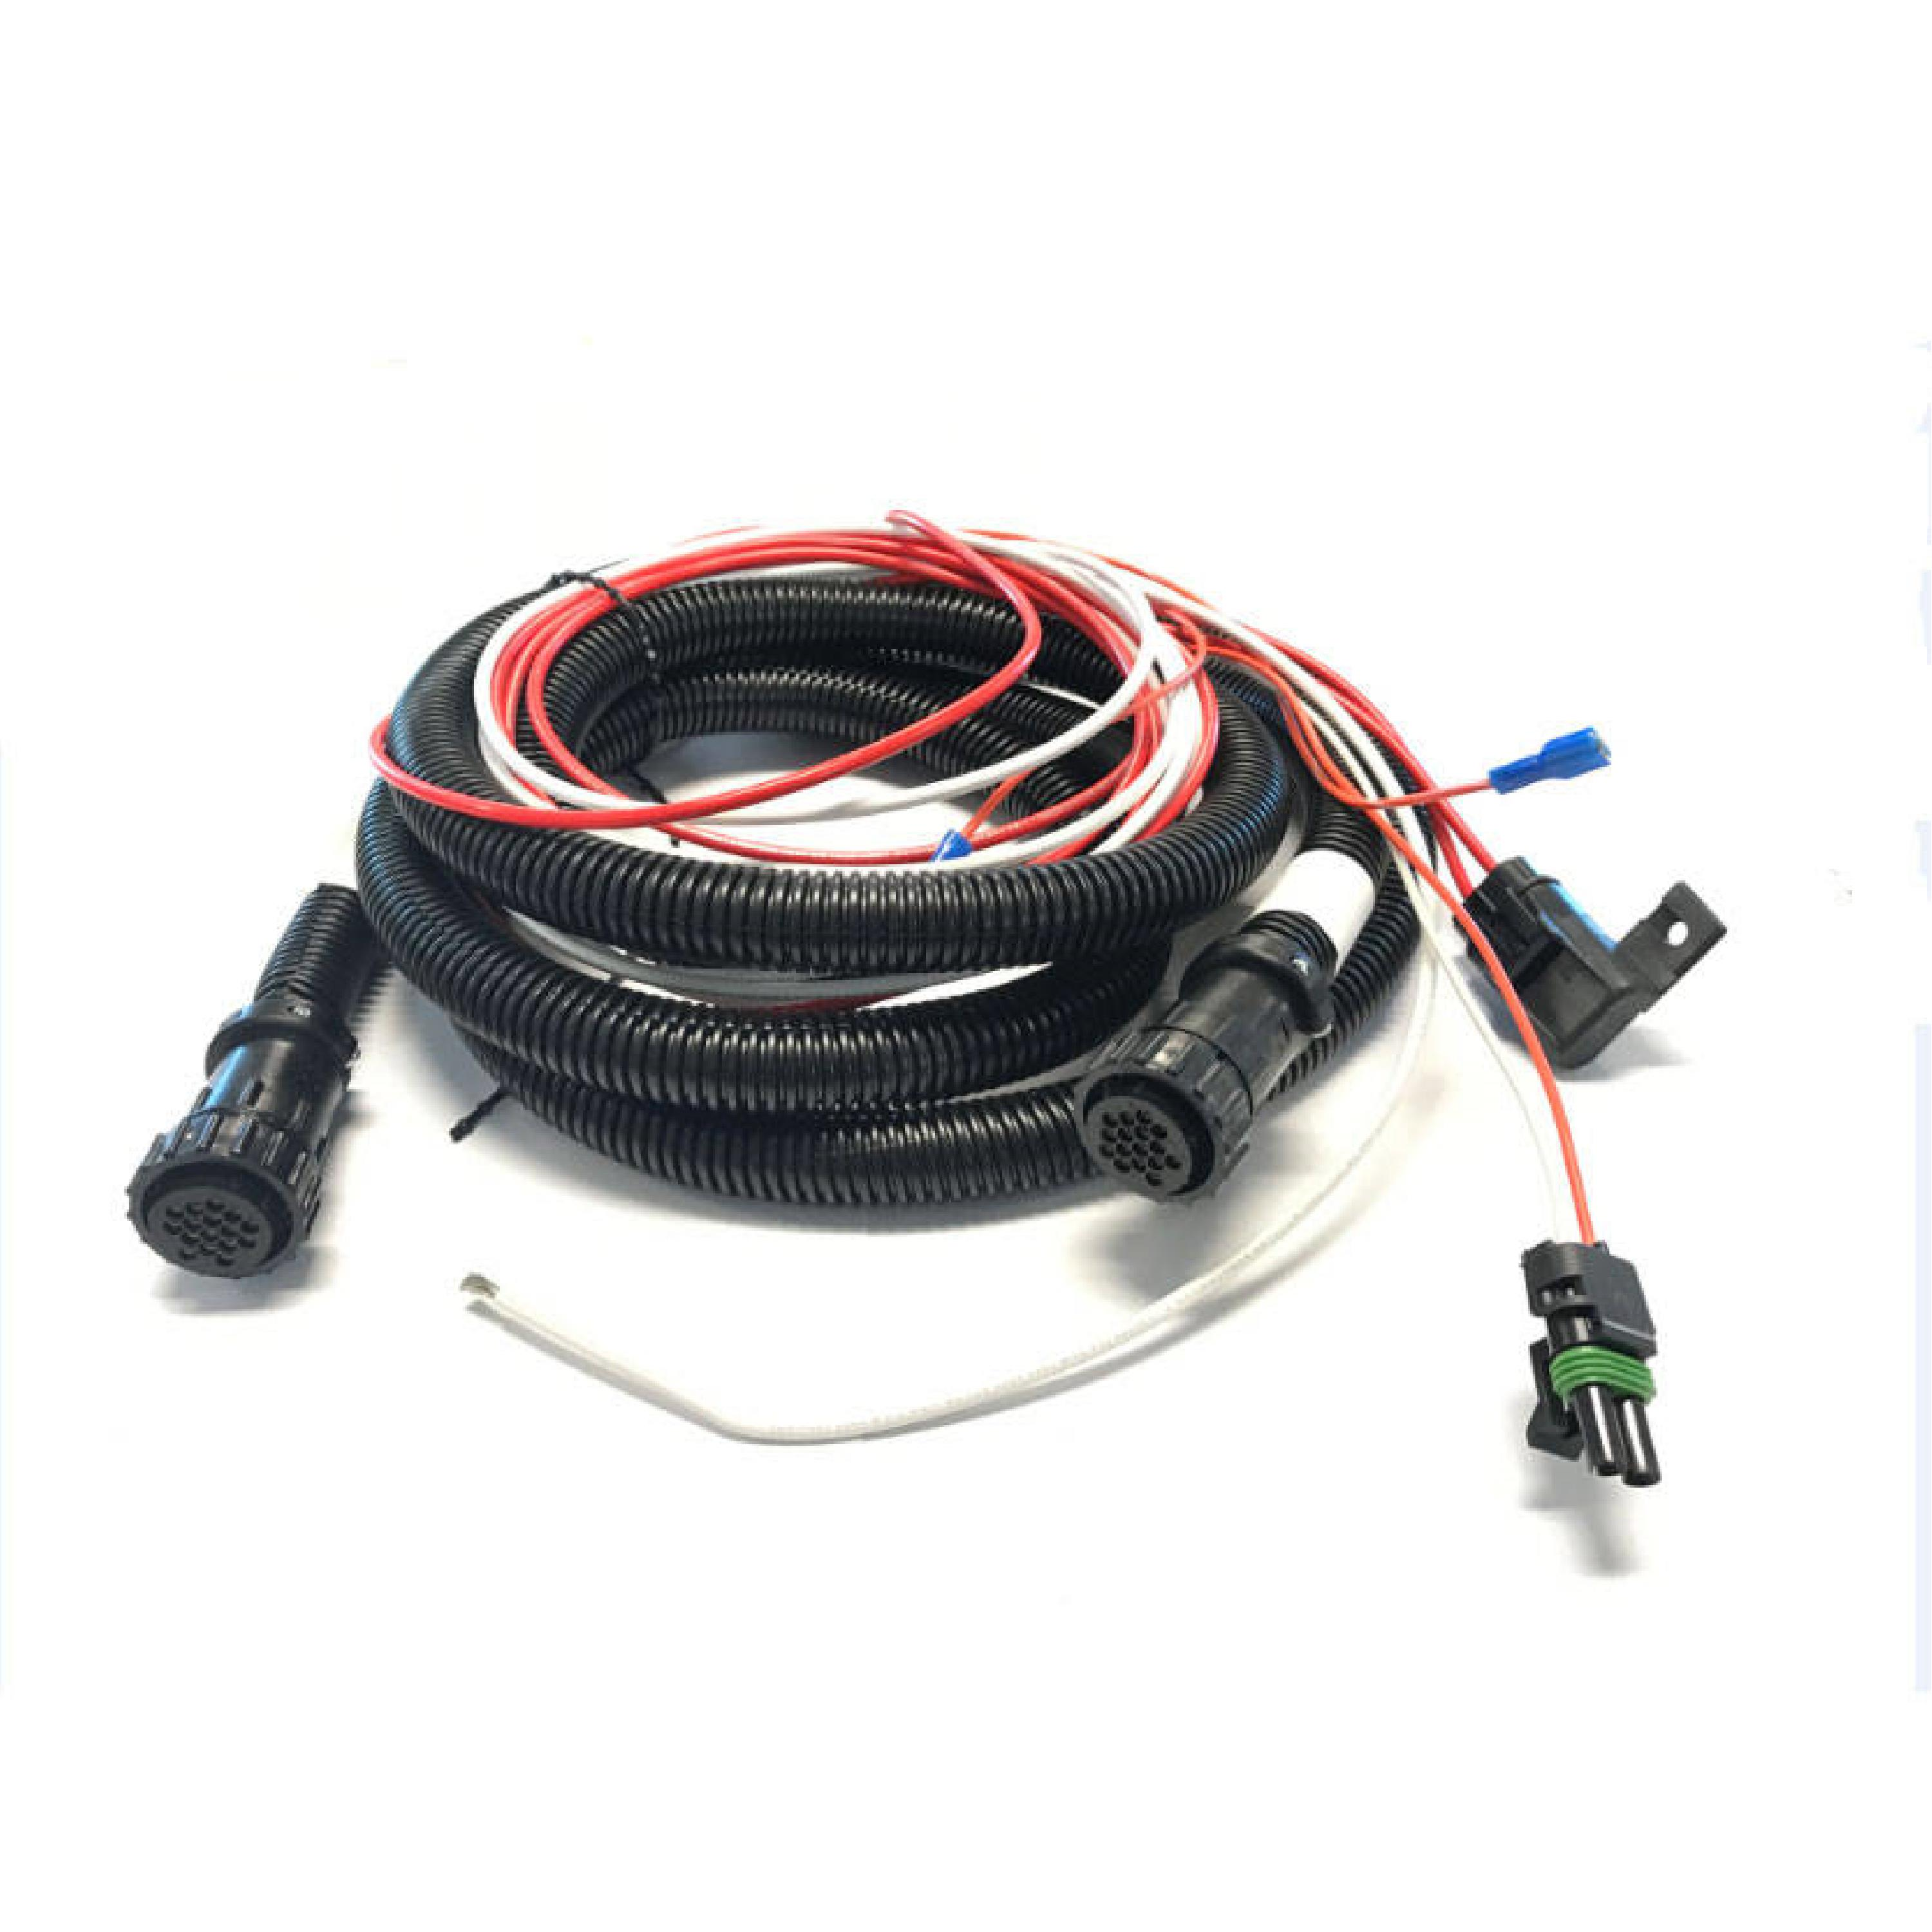 RAVEN 10' CONSOLE CABLE 440/450 on